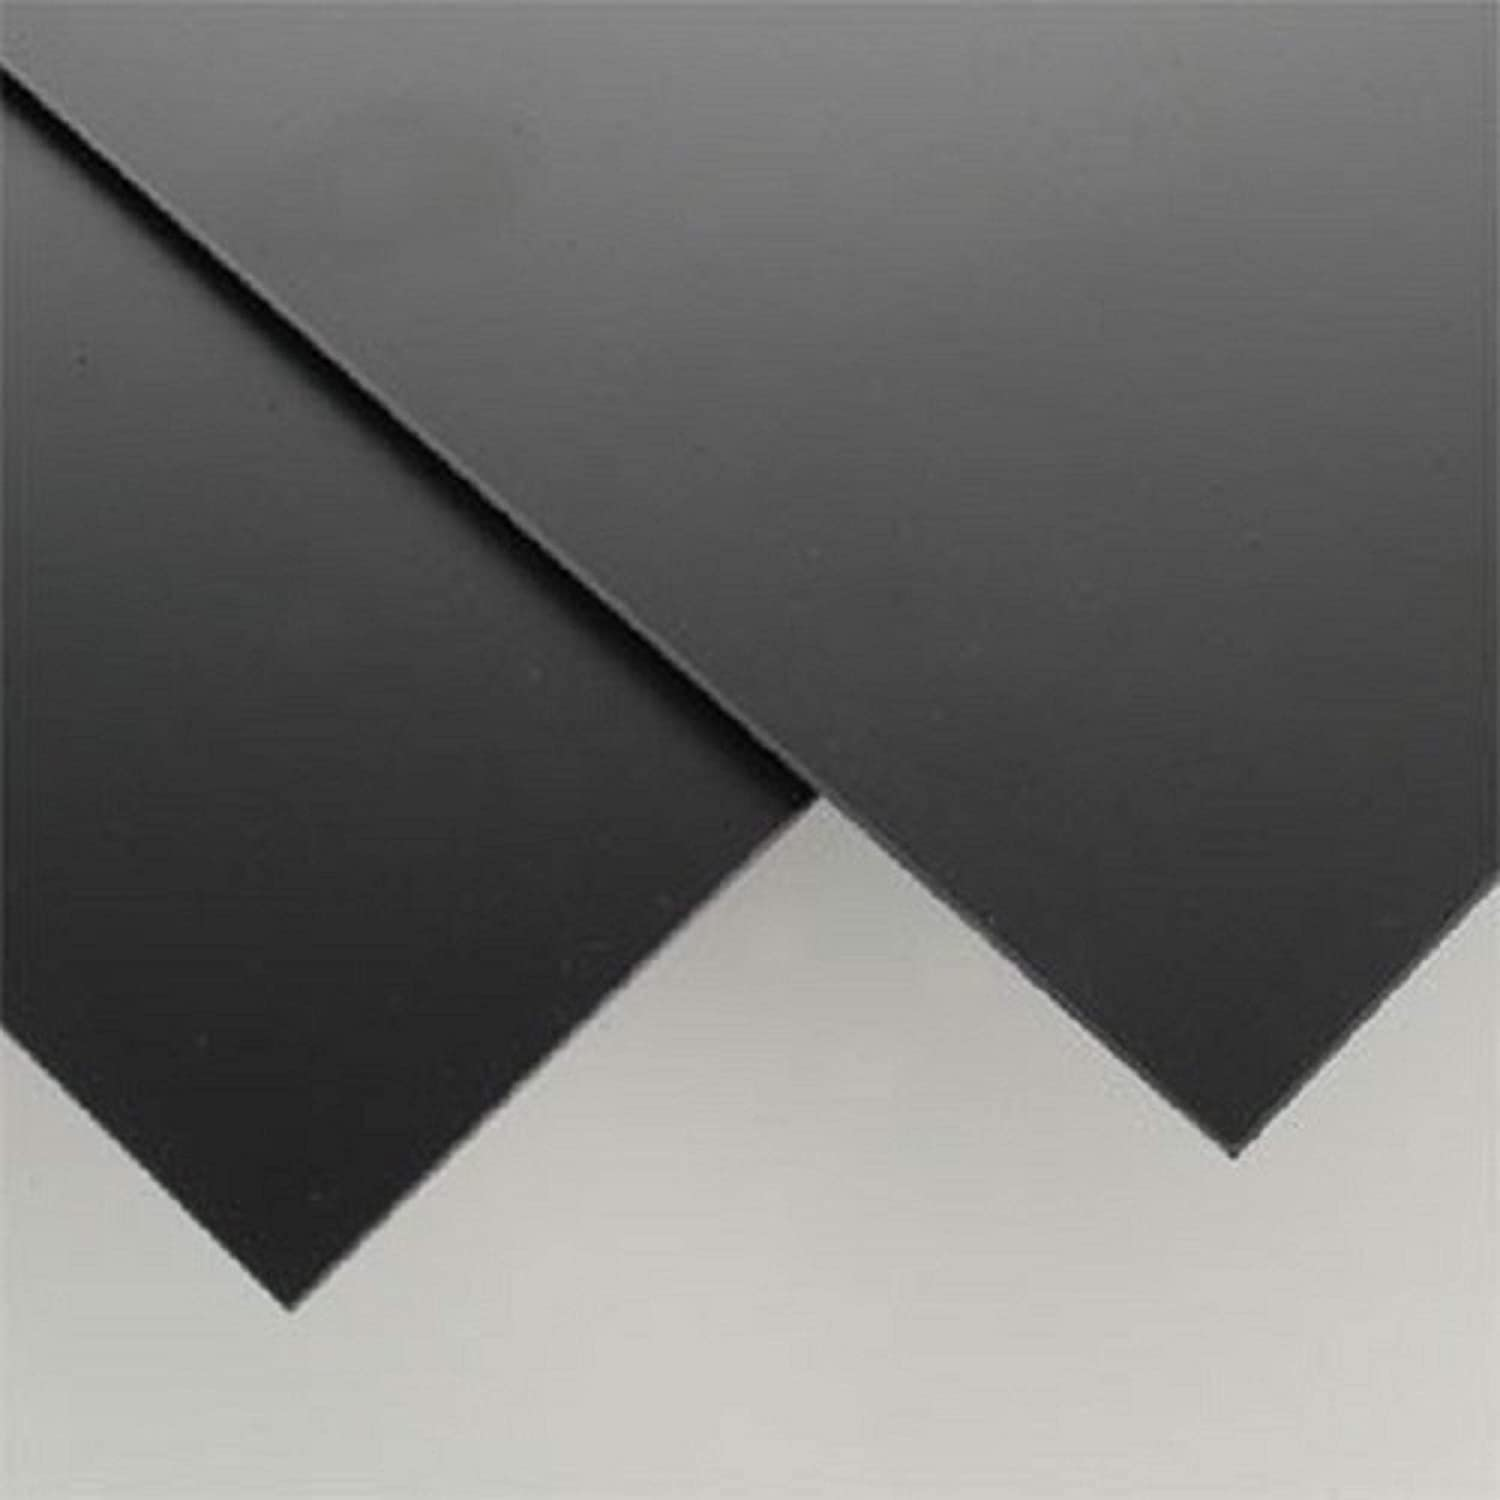 SIBE-R-PLASTIC SUPPLY trend lowest price rank Black Styrene Sheets Plastic 1 Thermoform